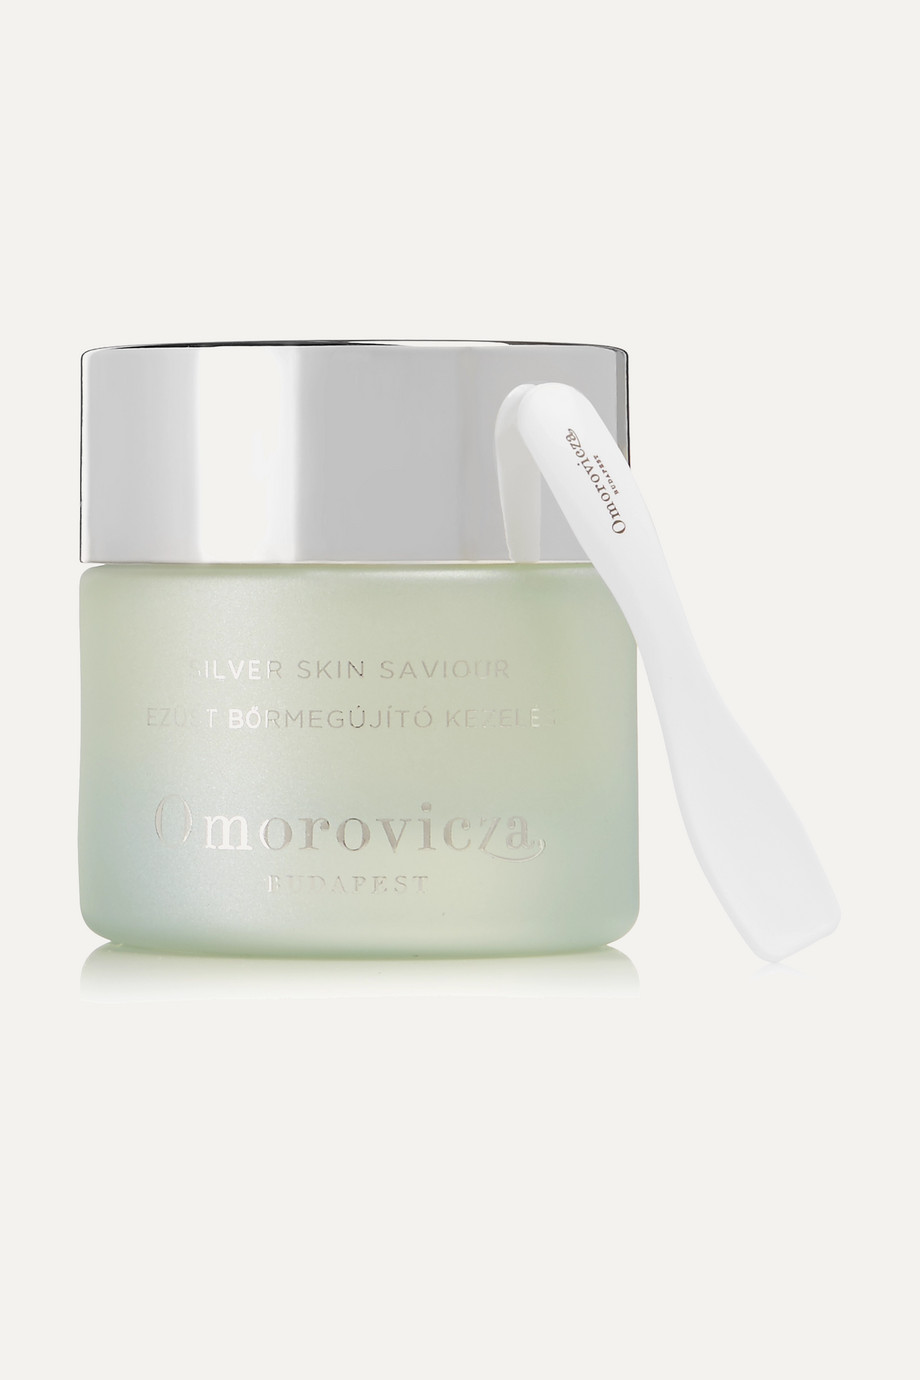 Omorovicza Silver Skin Saviour Mask, 50ml